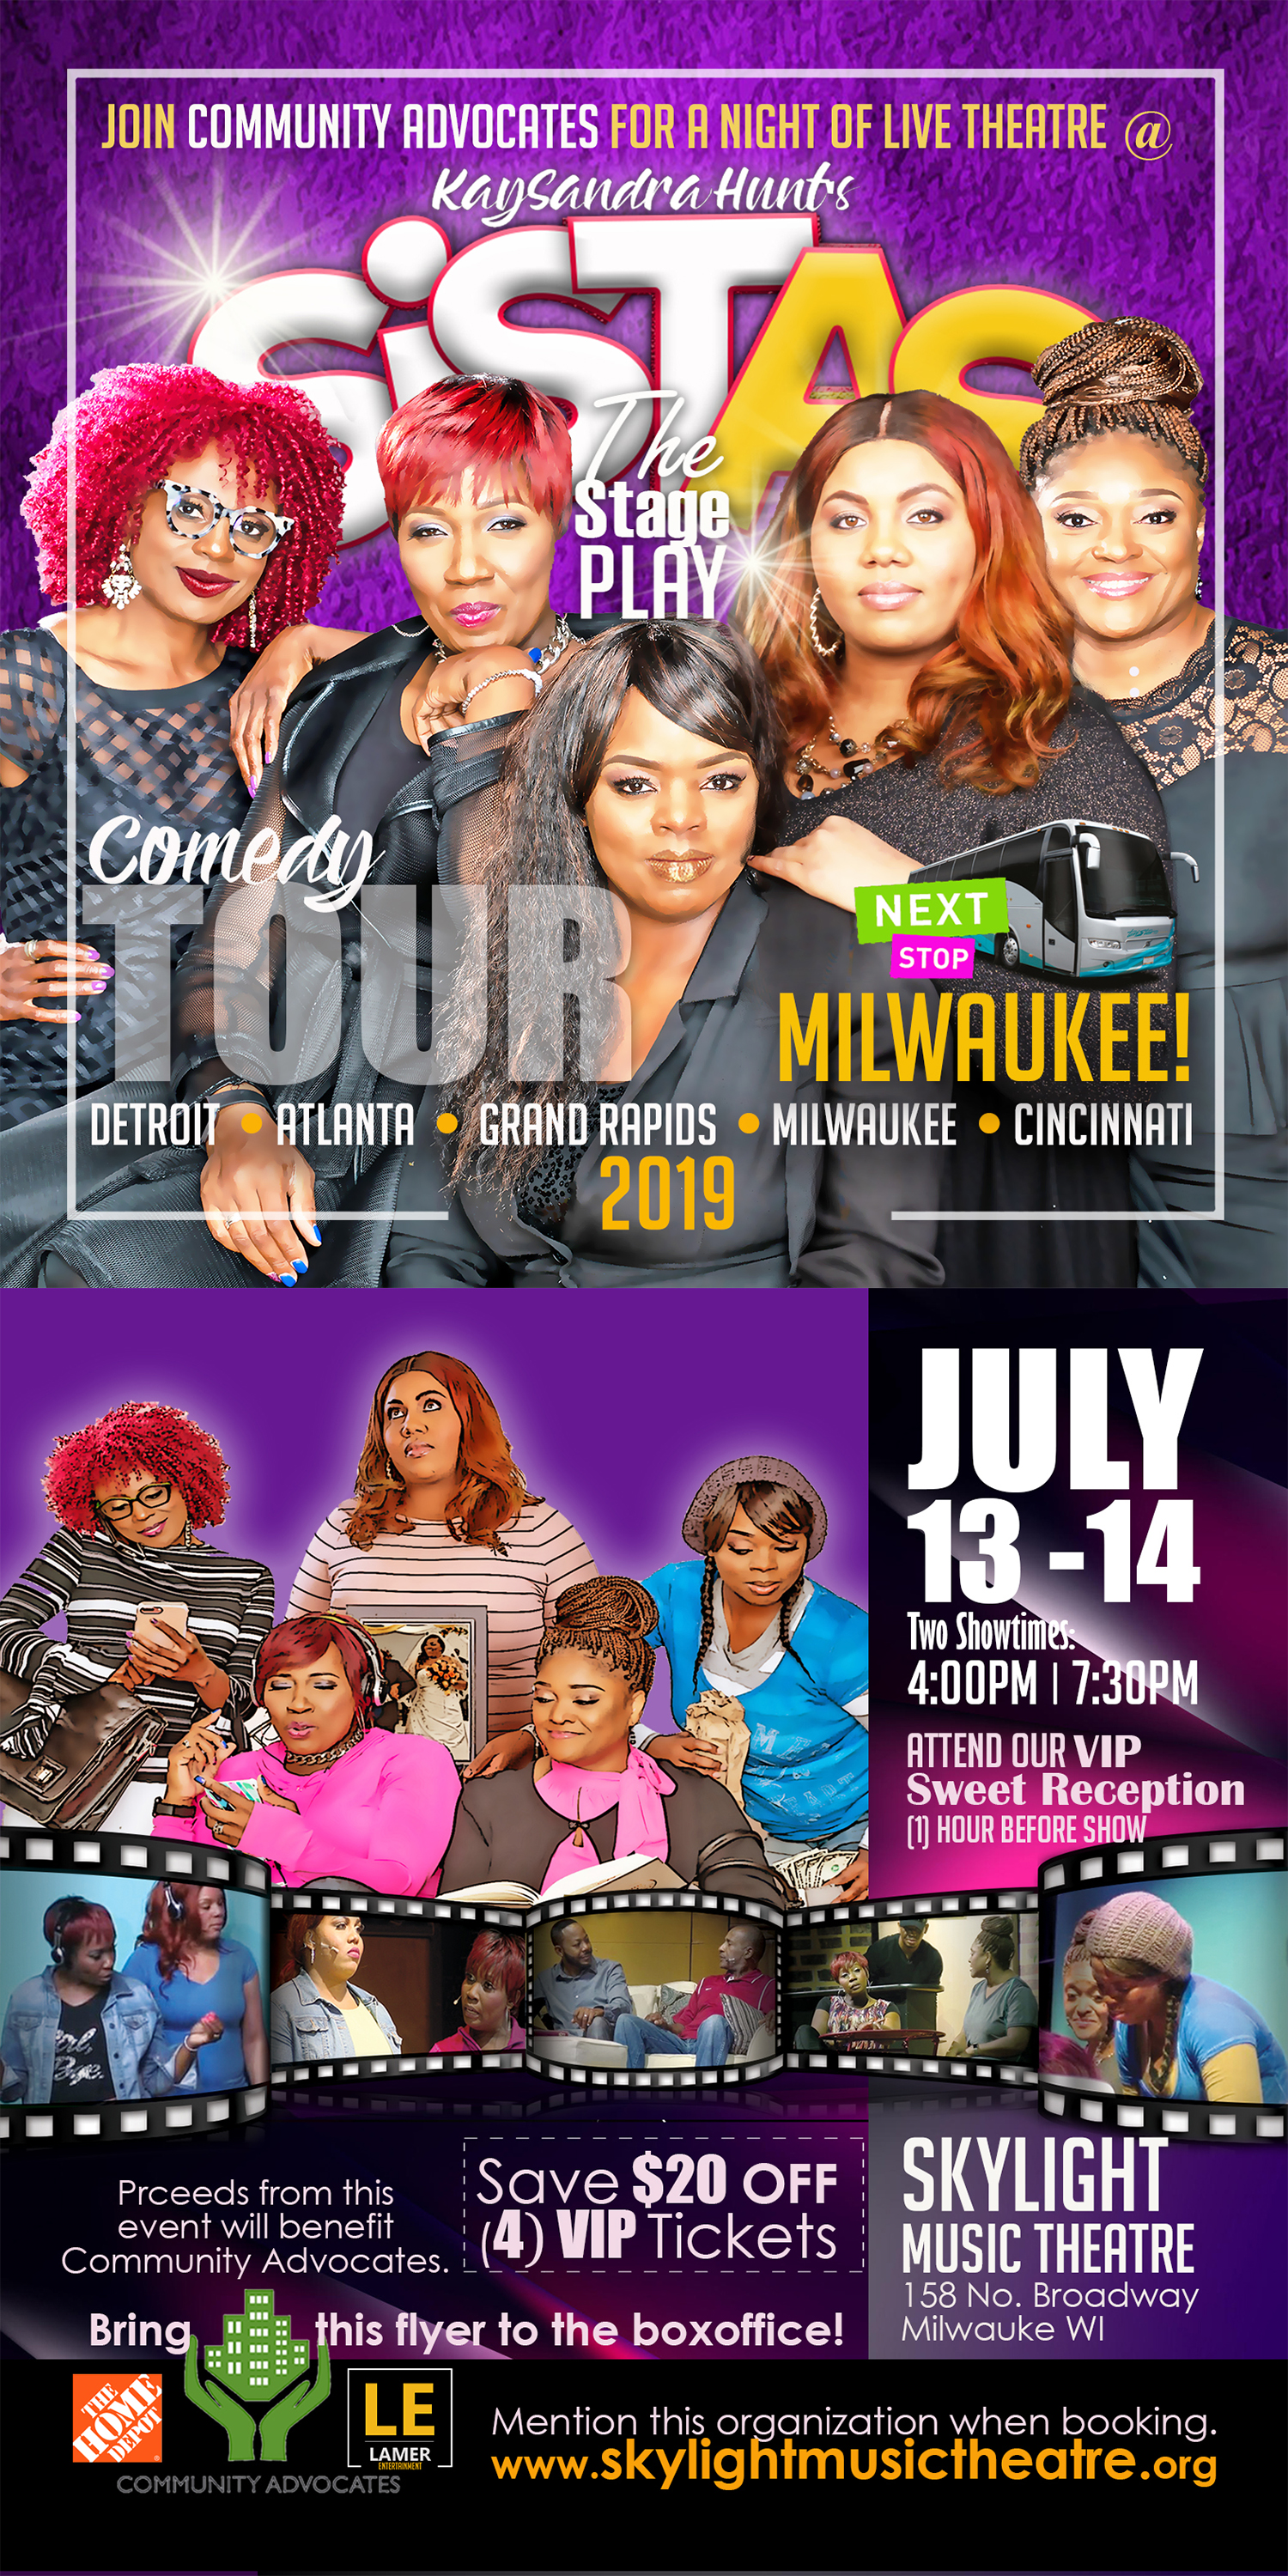 SISTAS: The Comedy StagePlay to Benefit Community Advocates & the Milwaukee Women's Center